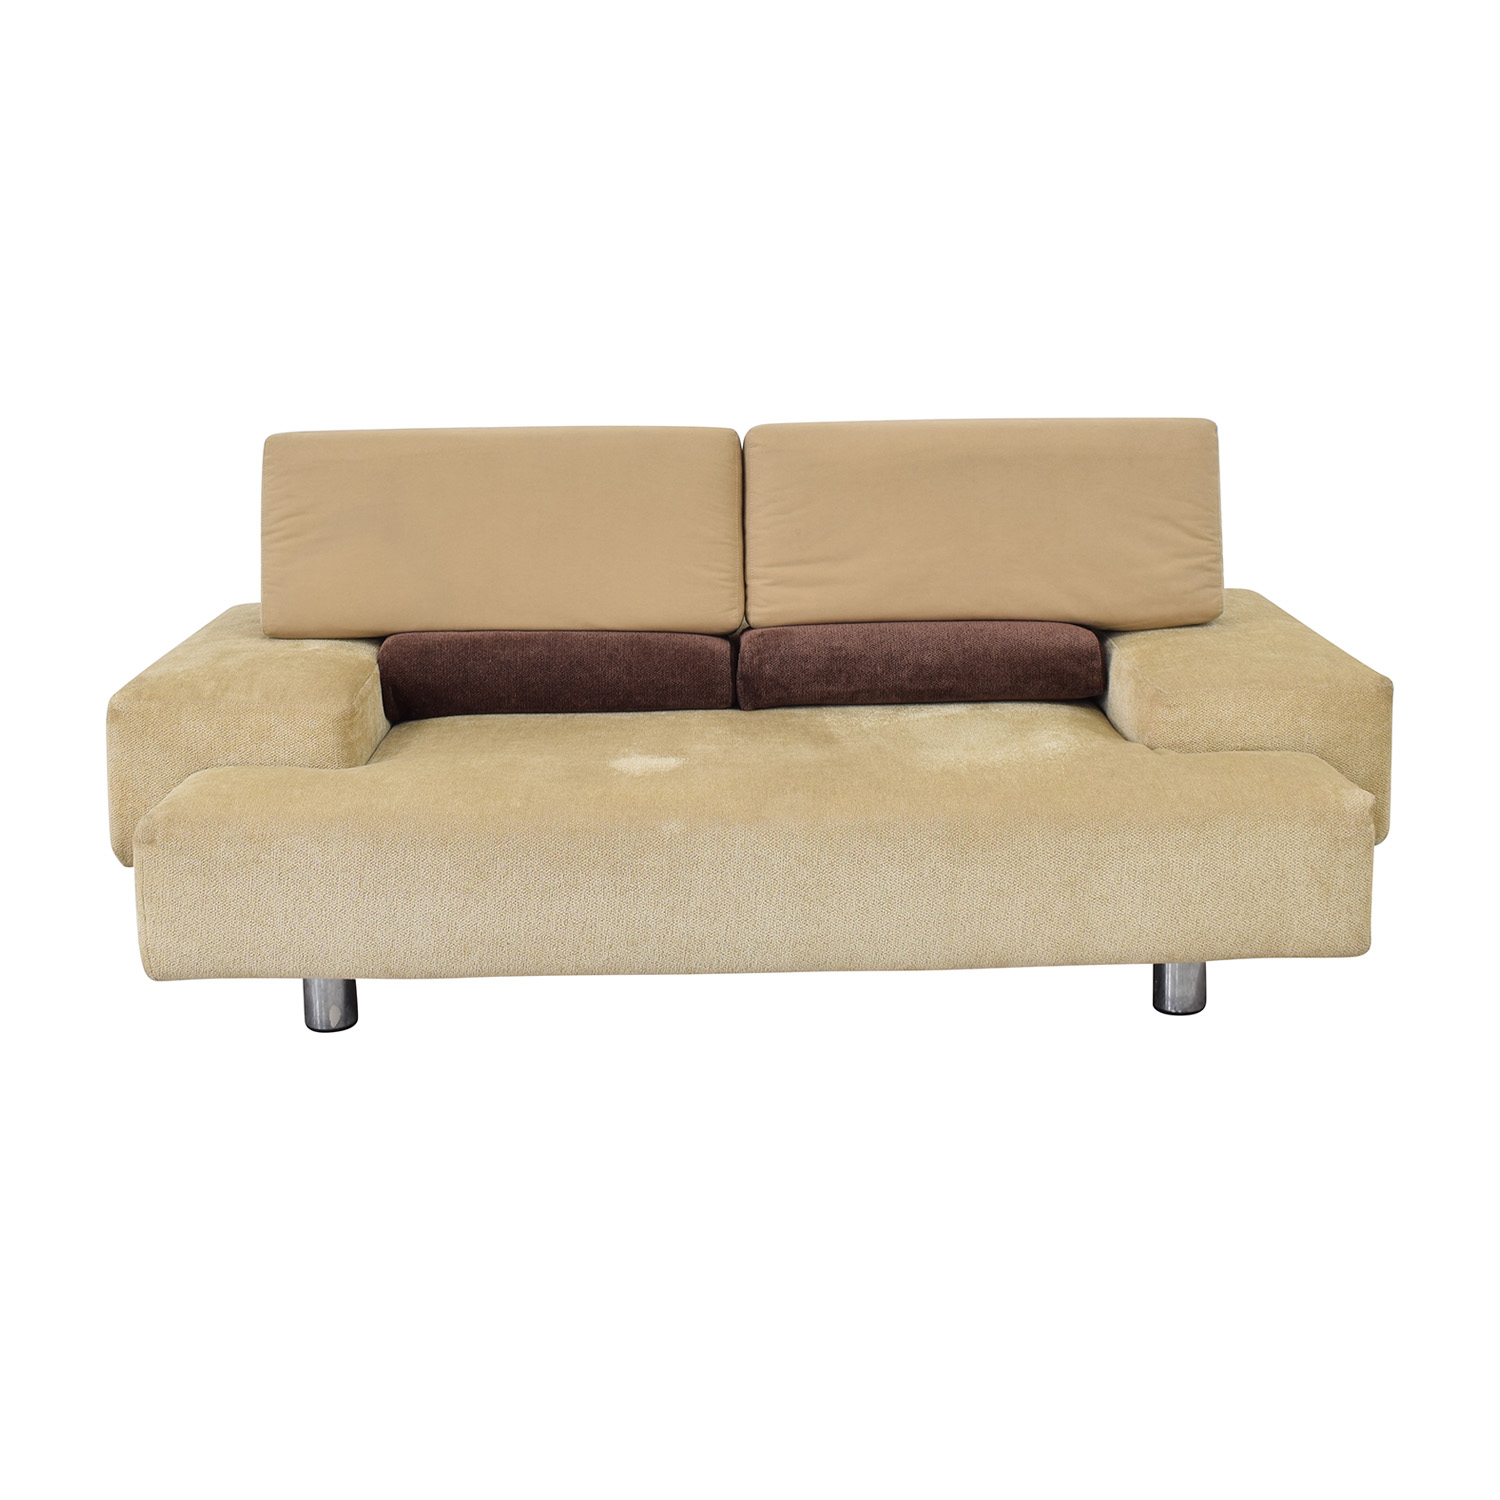 shop Aeon Furniture Aeon Furniture Convertible Sofa online